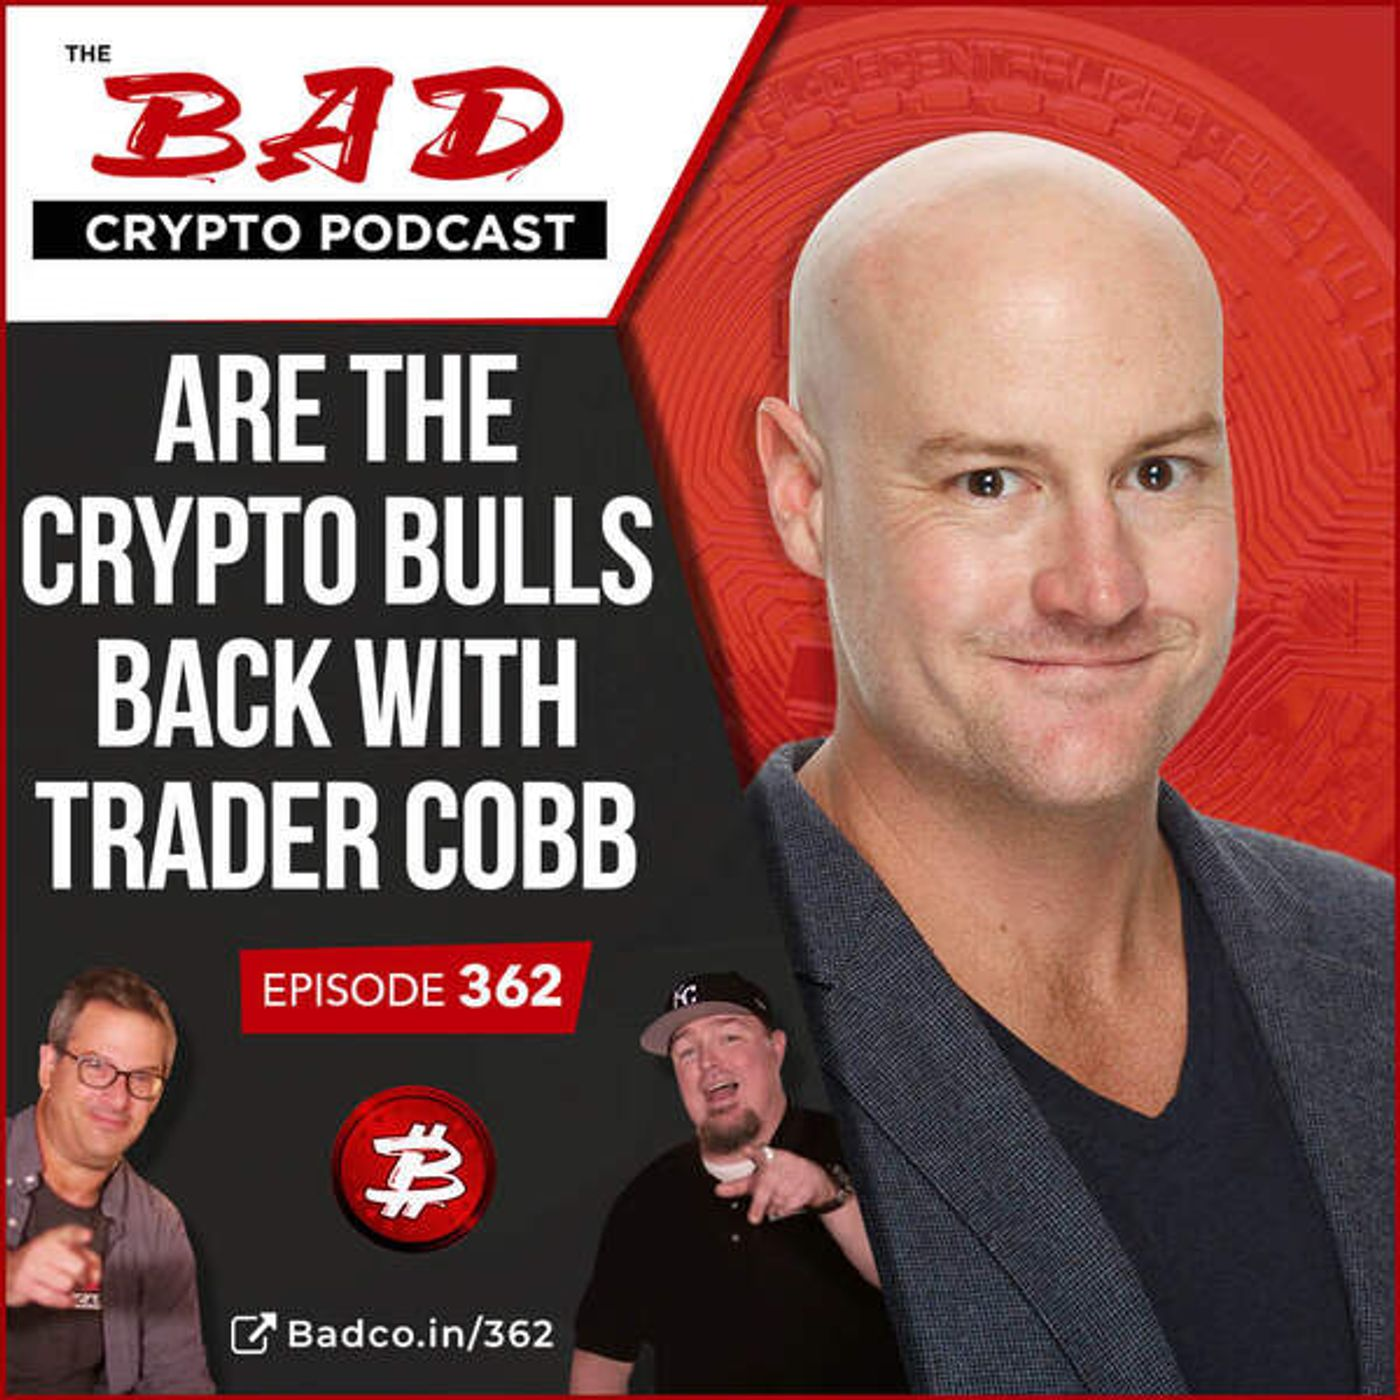 Heartland Newsfeed Podcast Network: The Bad Crypto Podcast (Are the Crypto Bulls Back with Trader Cobb)